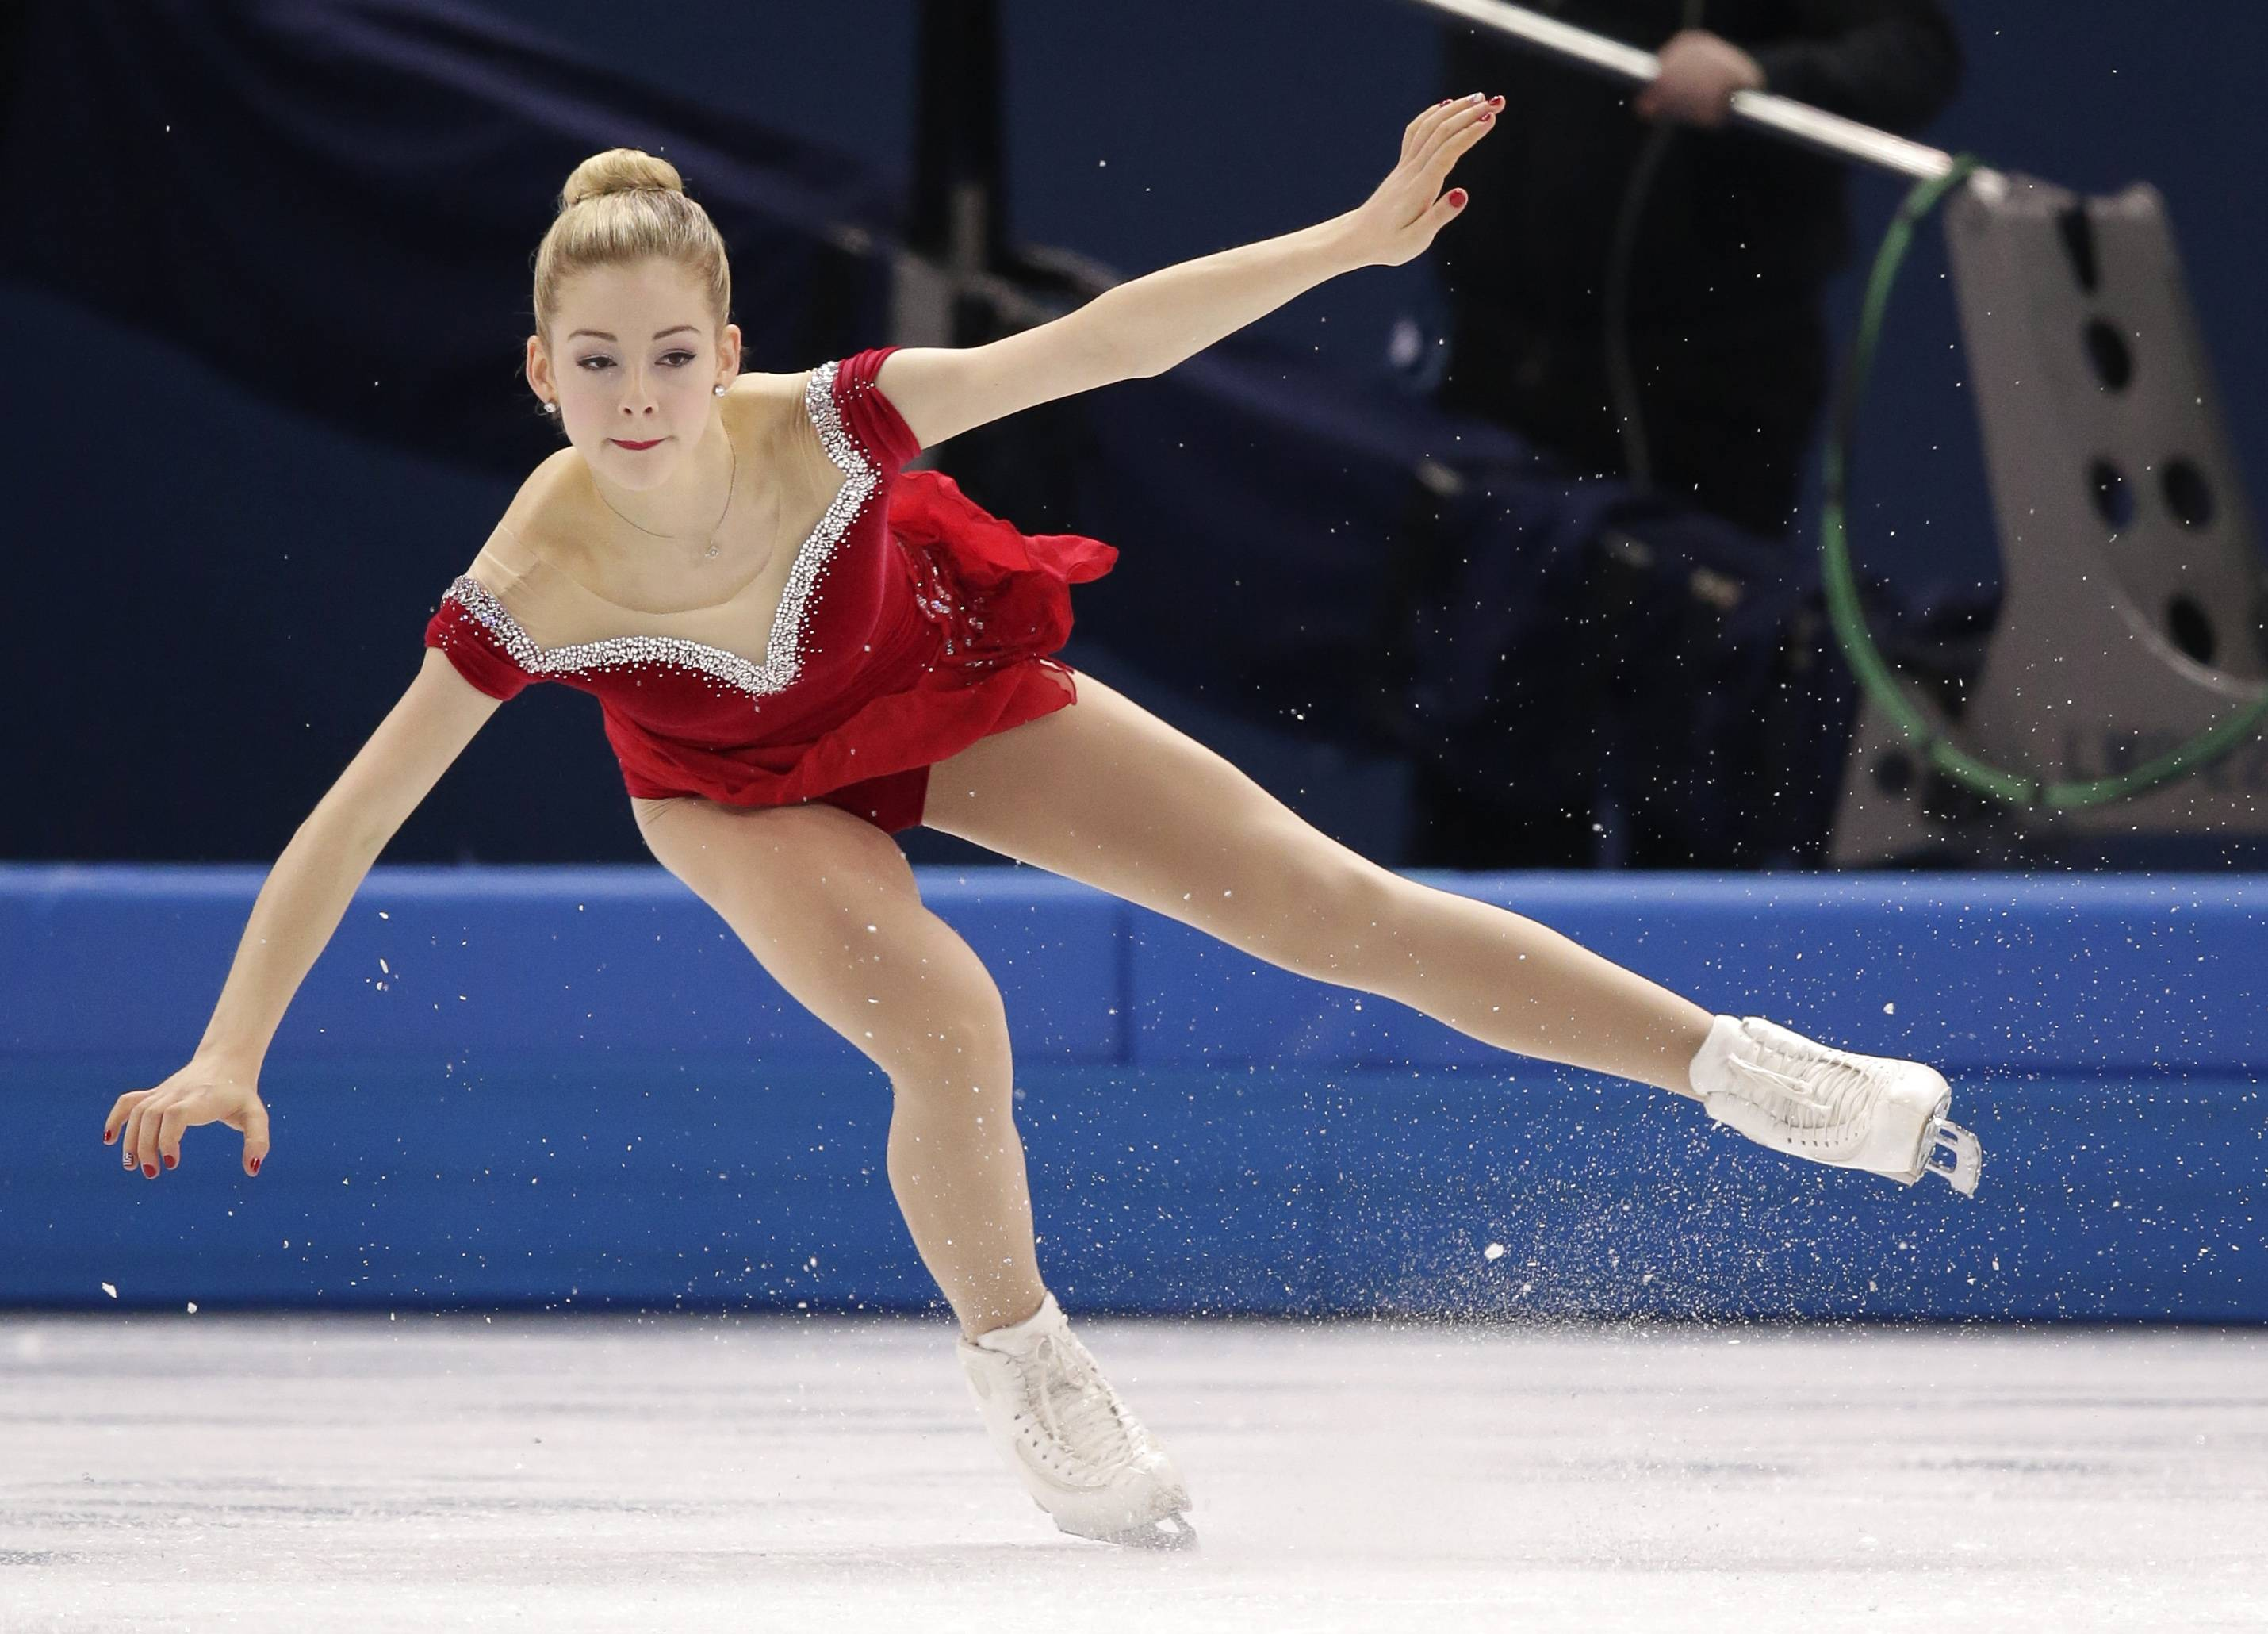 Gracie Gold of the United States competes in the women's short program figure skating competition at the Iceberg Skating Palace during the 2014 Winter Olympics, Wednesday, Feb. 19, 2014, in Sochi, Russia.